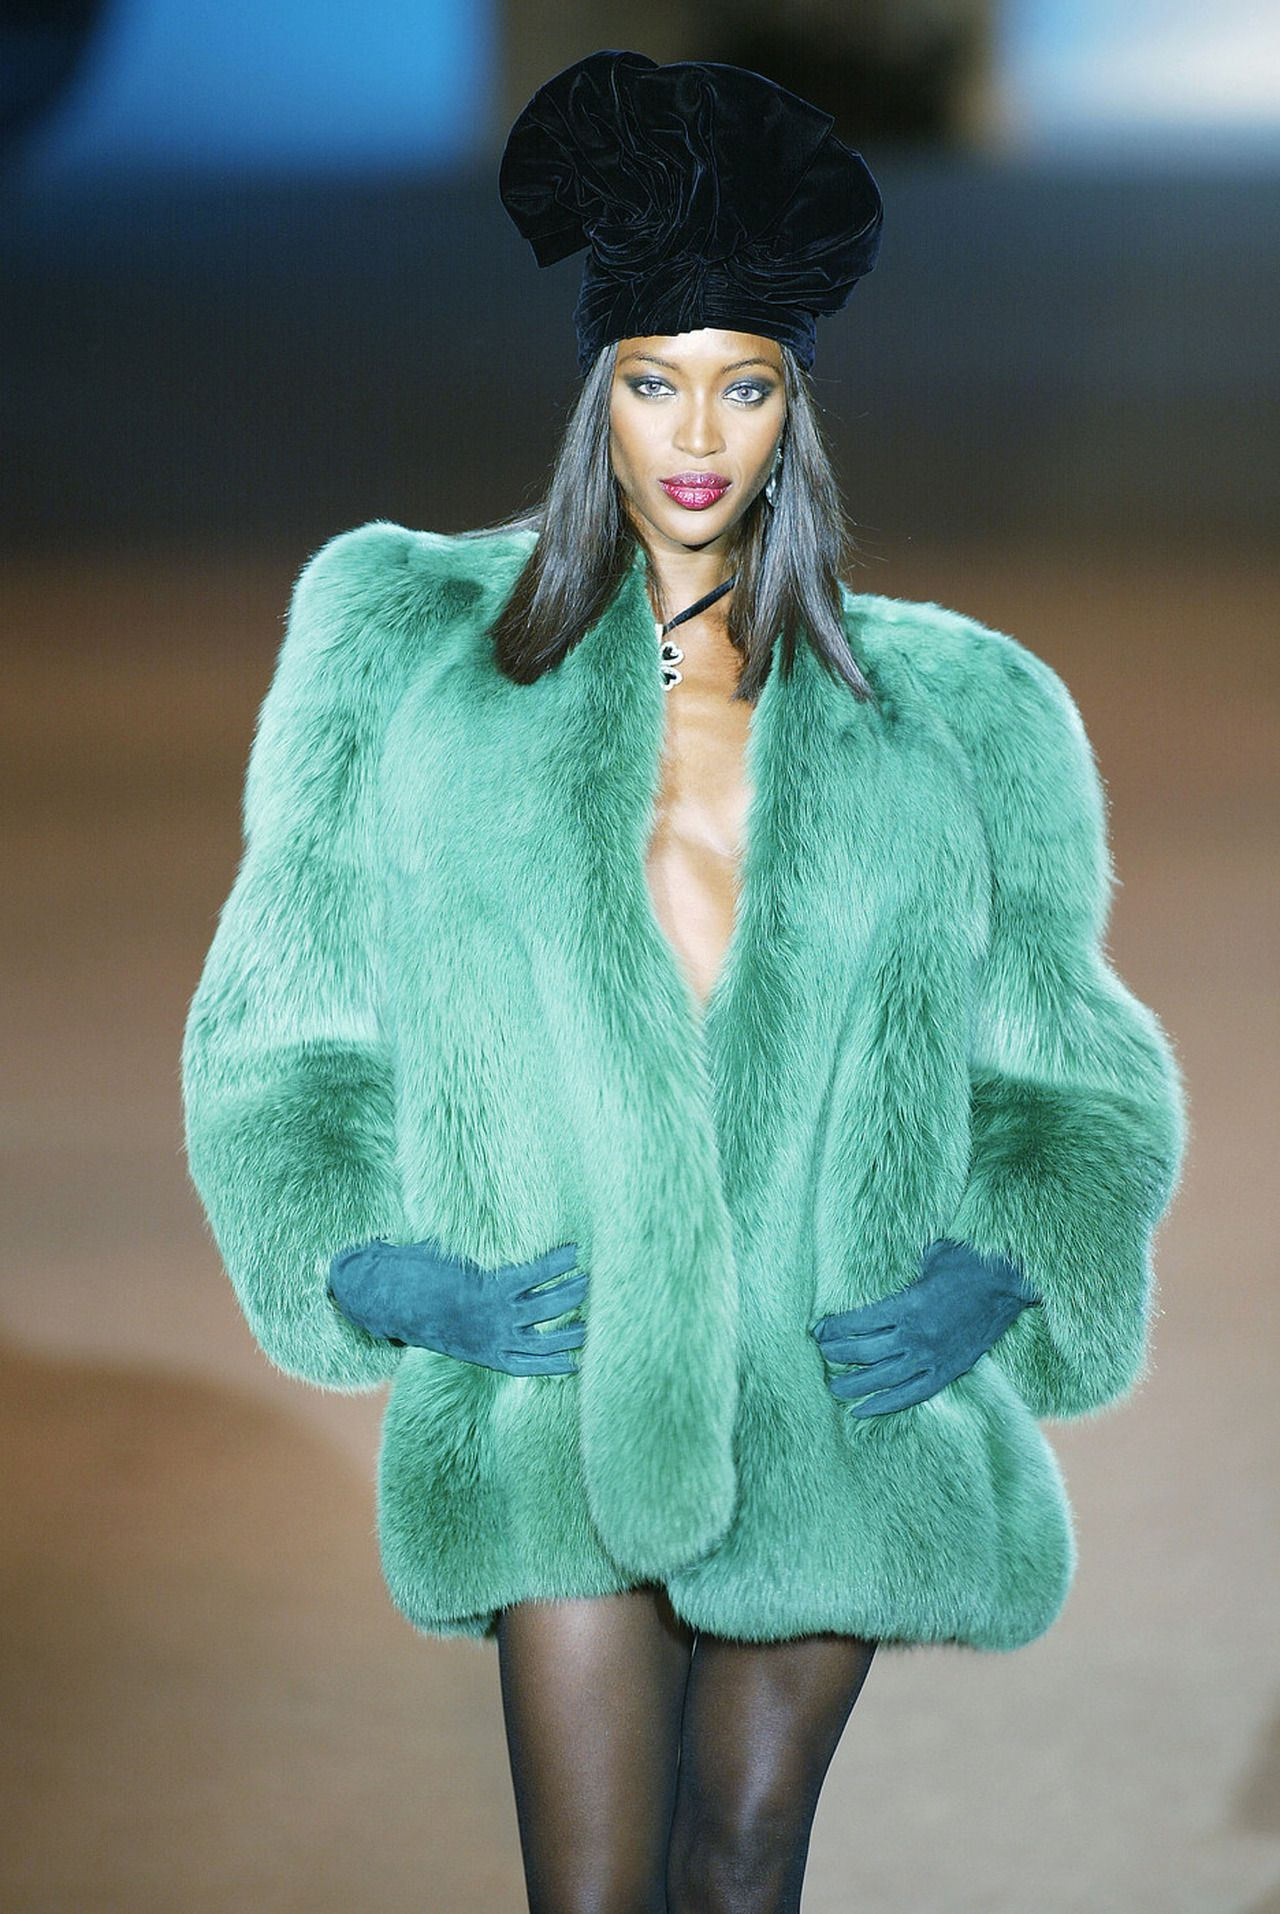 39e154c7604 Naomi Campbell on the runway for Yves Saint Laurent. | On the Runway ...